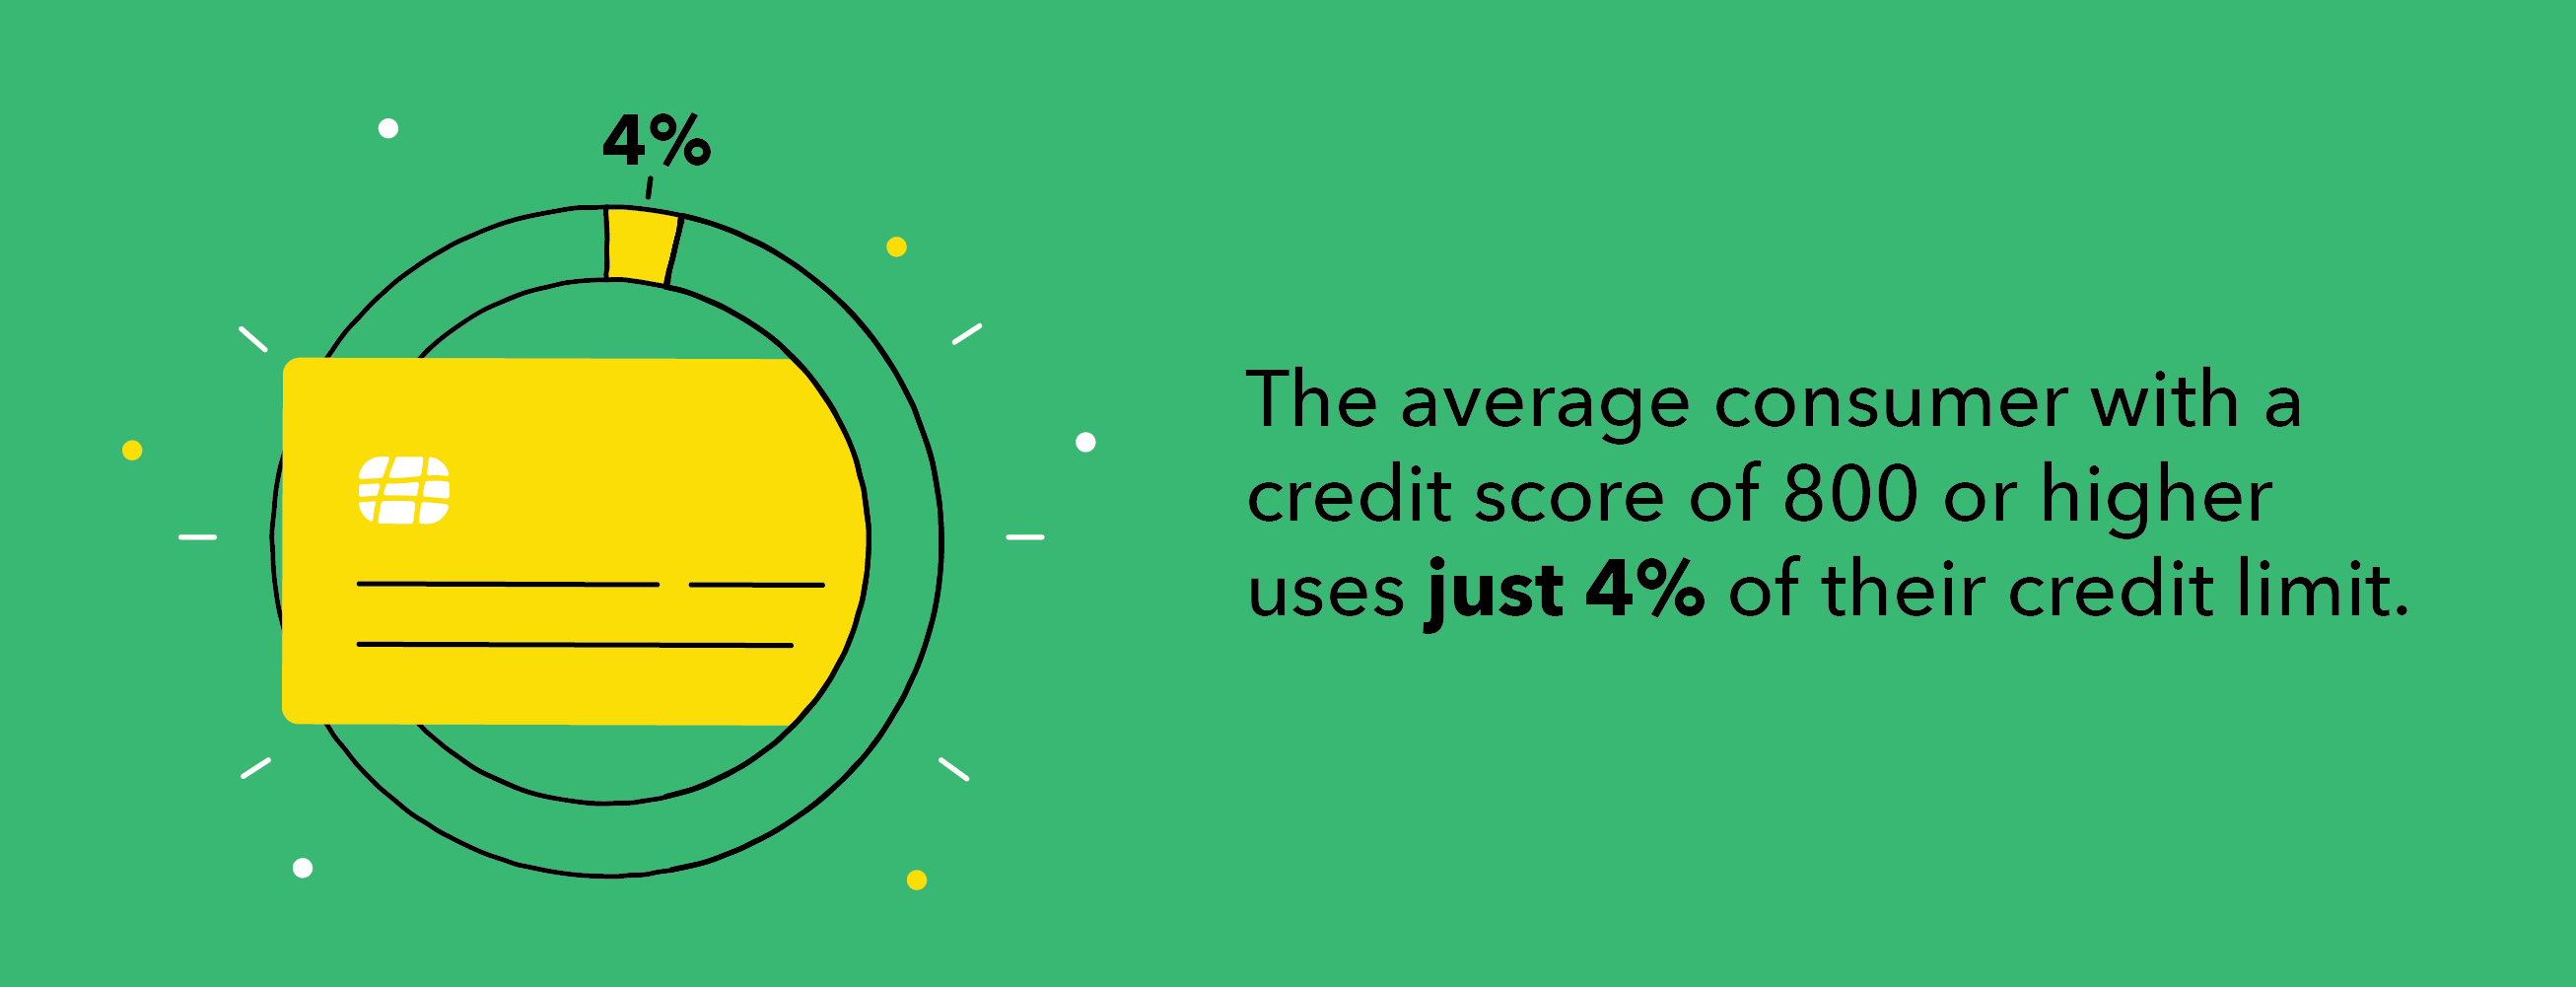 Average consumer credit score